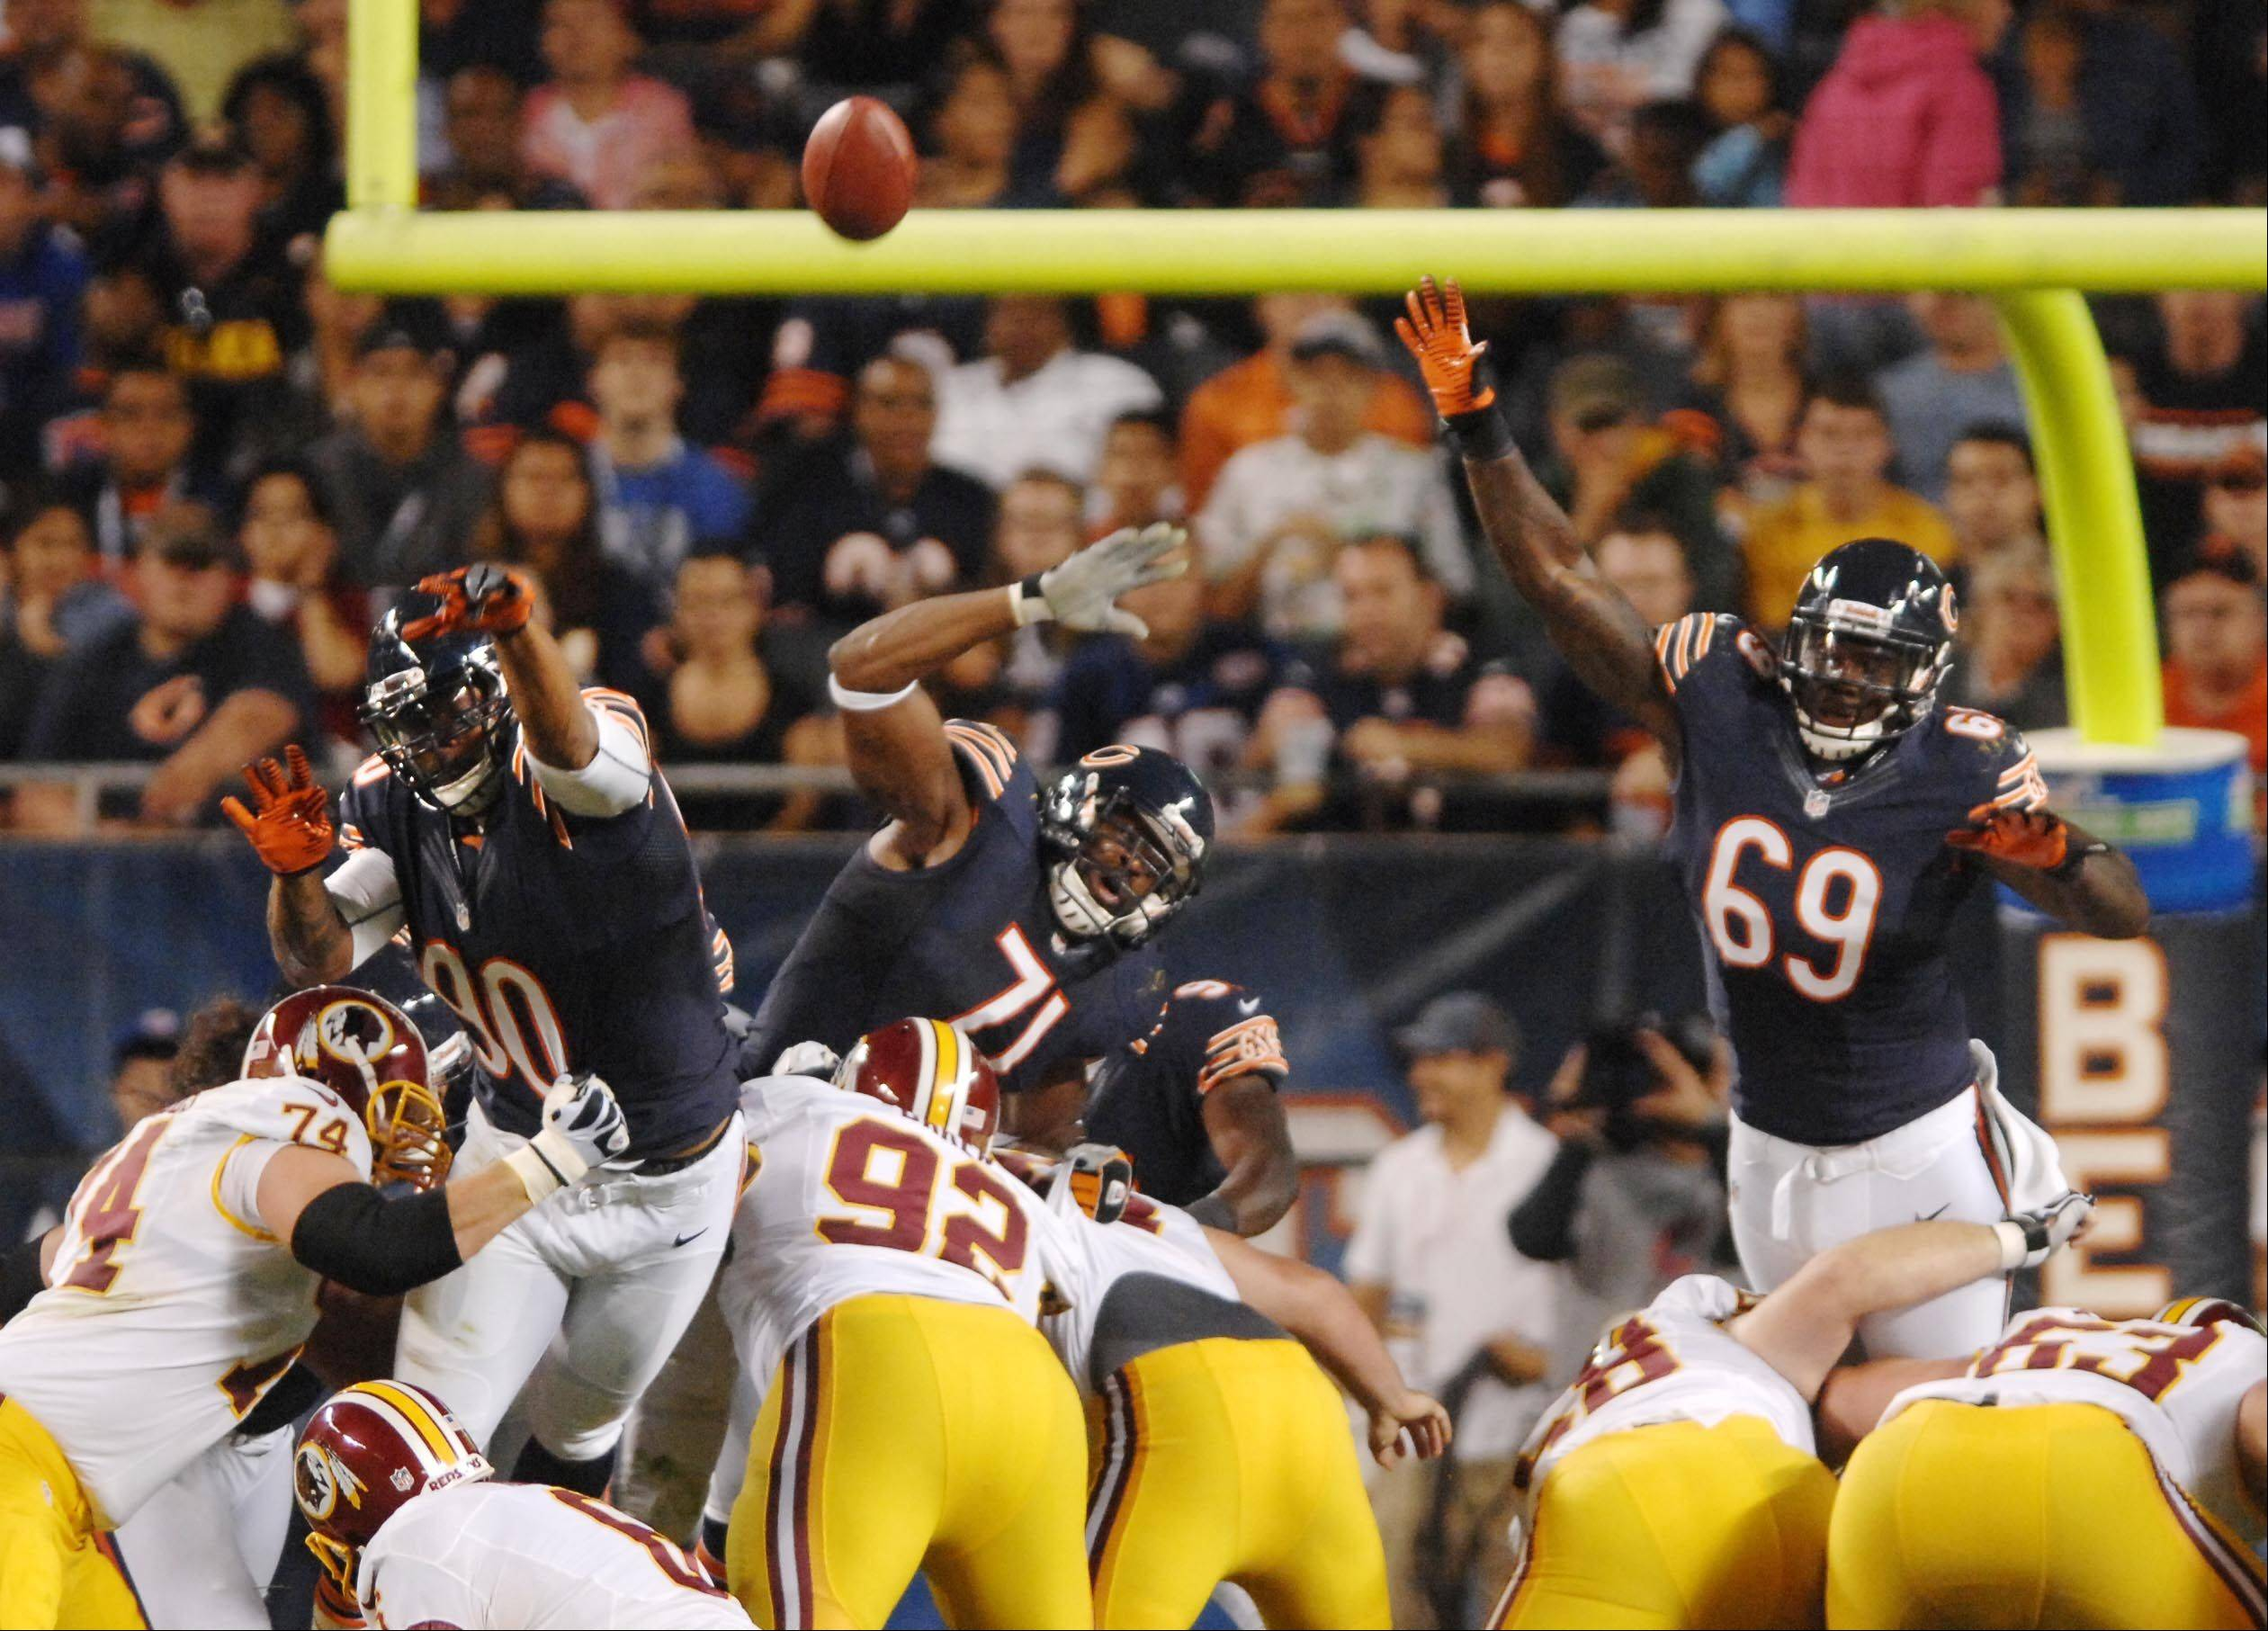 Chicago Bears defensive end Julius Peppers, defensive end Israel Idonije, and defensive end Henry Melton try to block a field goal Saturday against the Washington Redskins in the second preseason game at Soldier Field in Chicago.